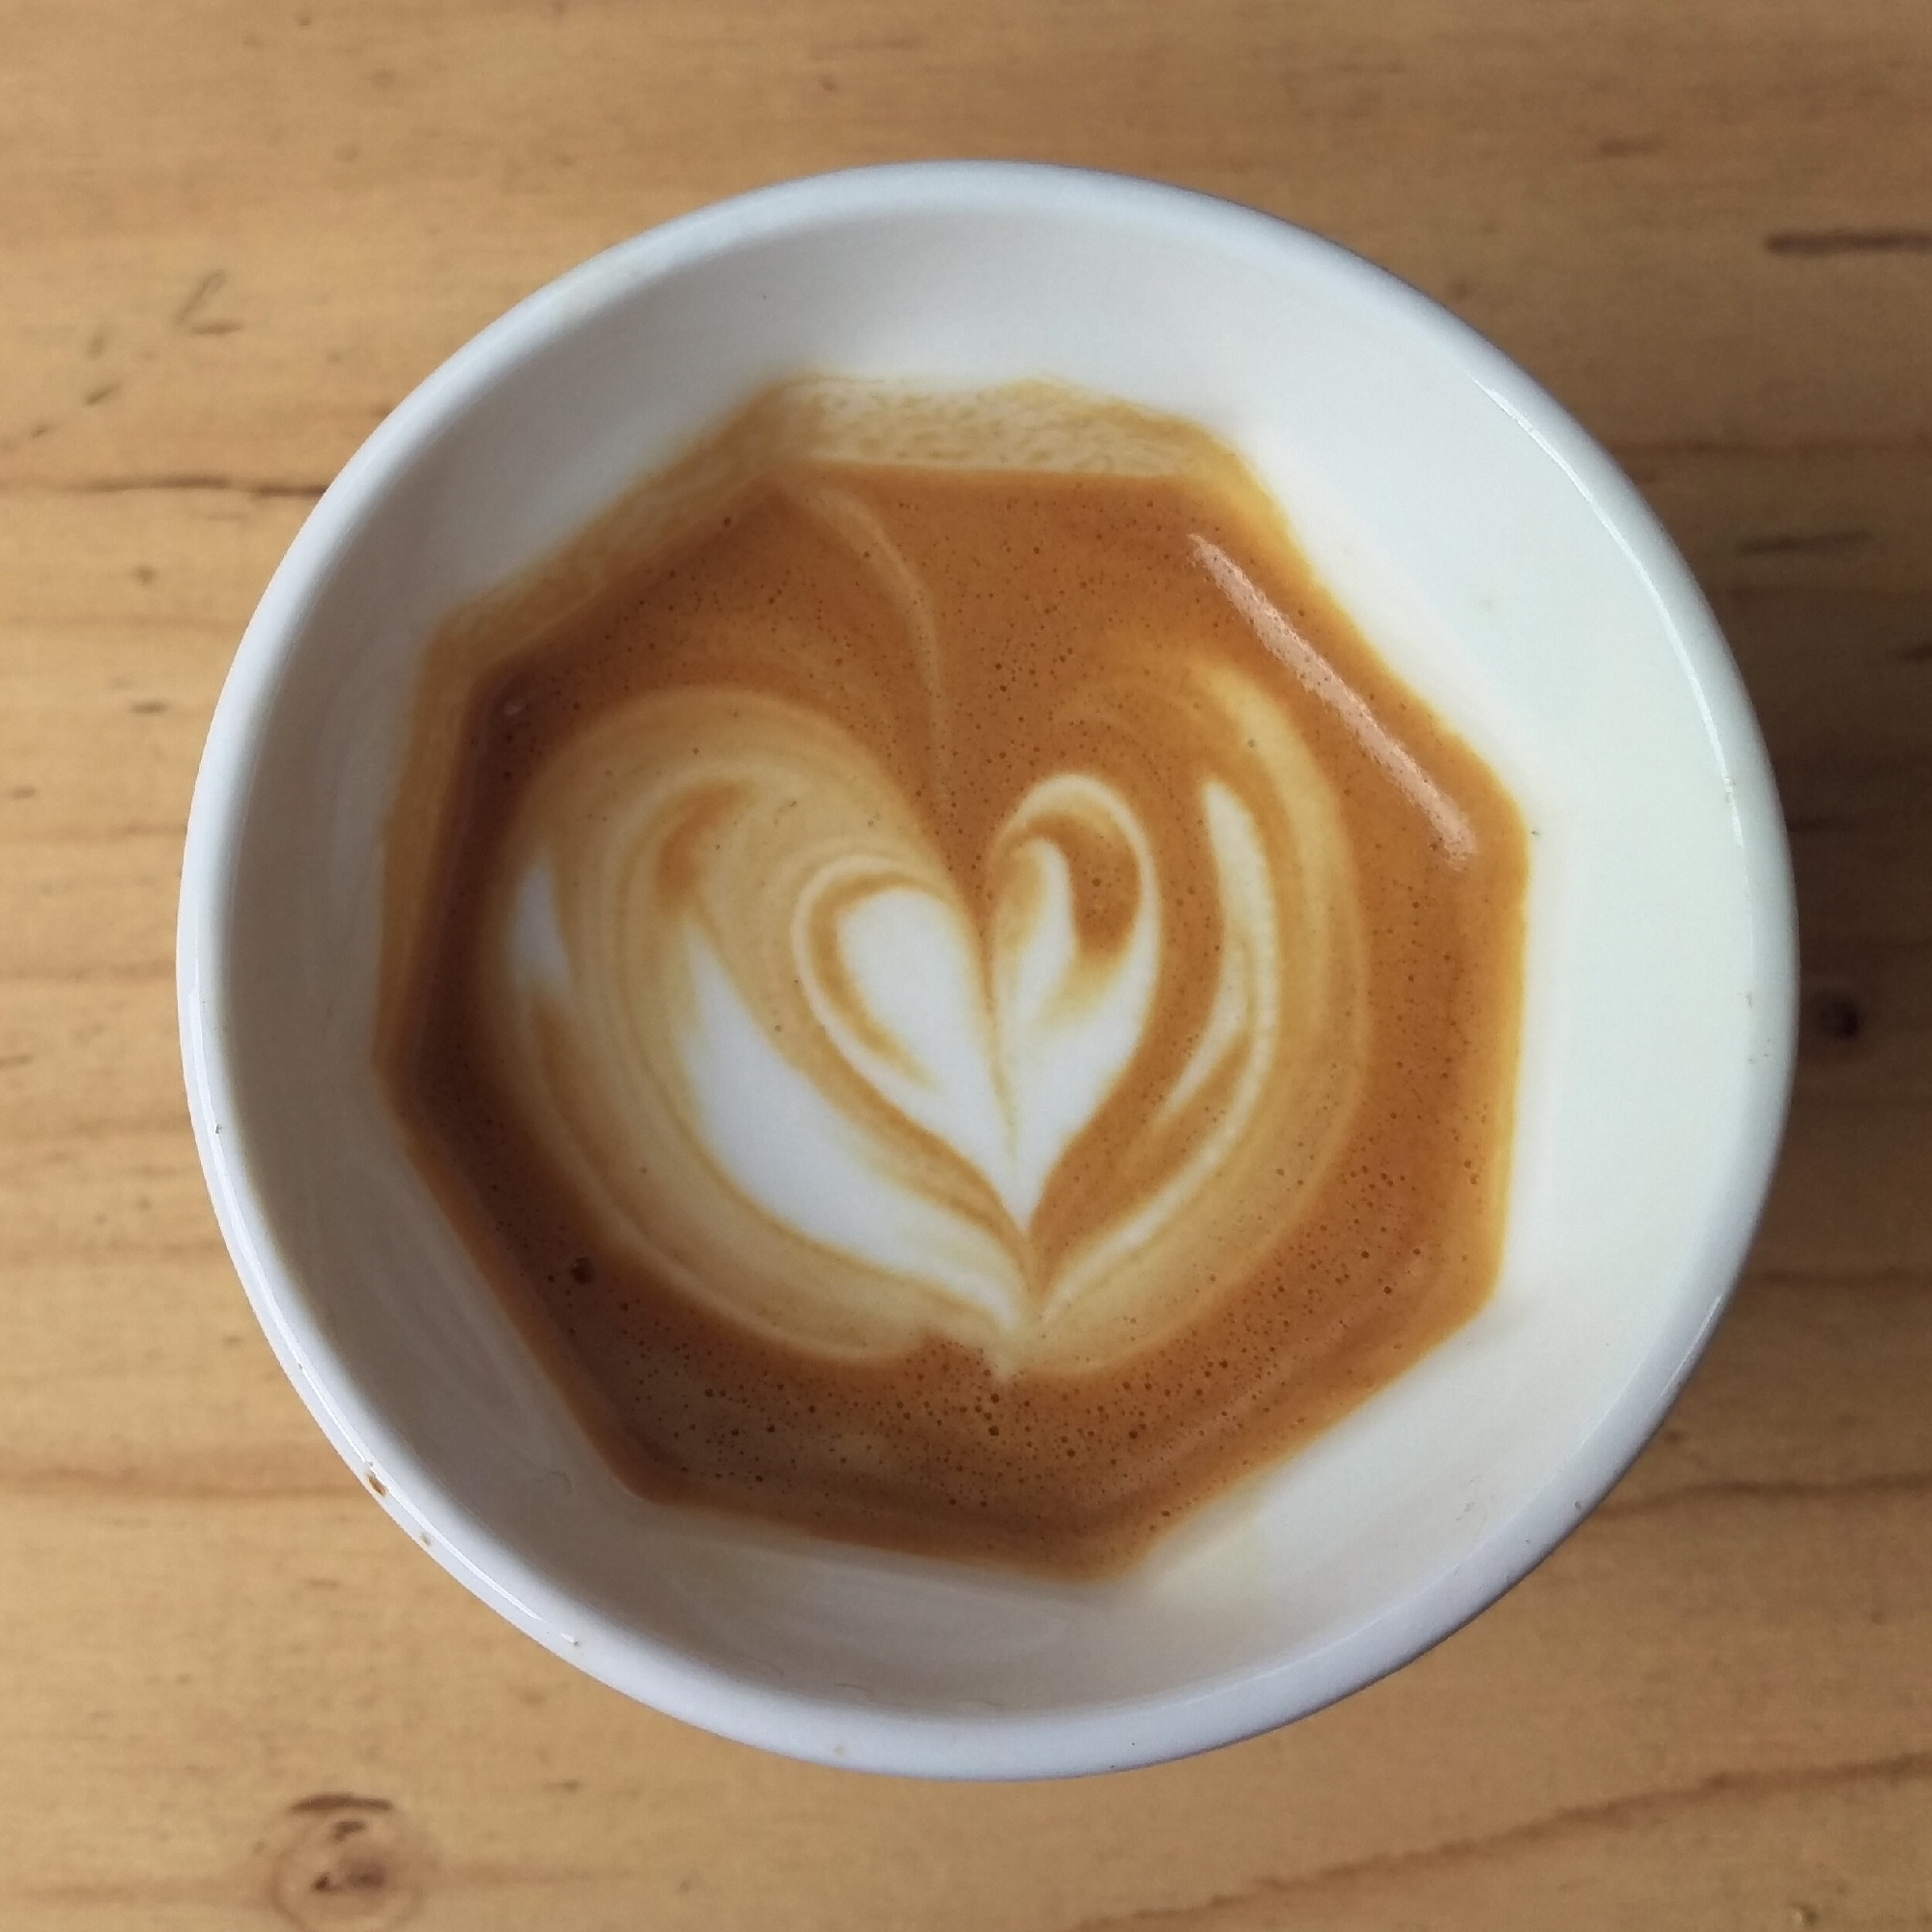 A heart-shaped tulip in my Therma Cup, a white, porcelain reusable mug, with a circular rim and an octagonal interior.